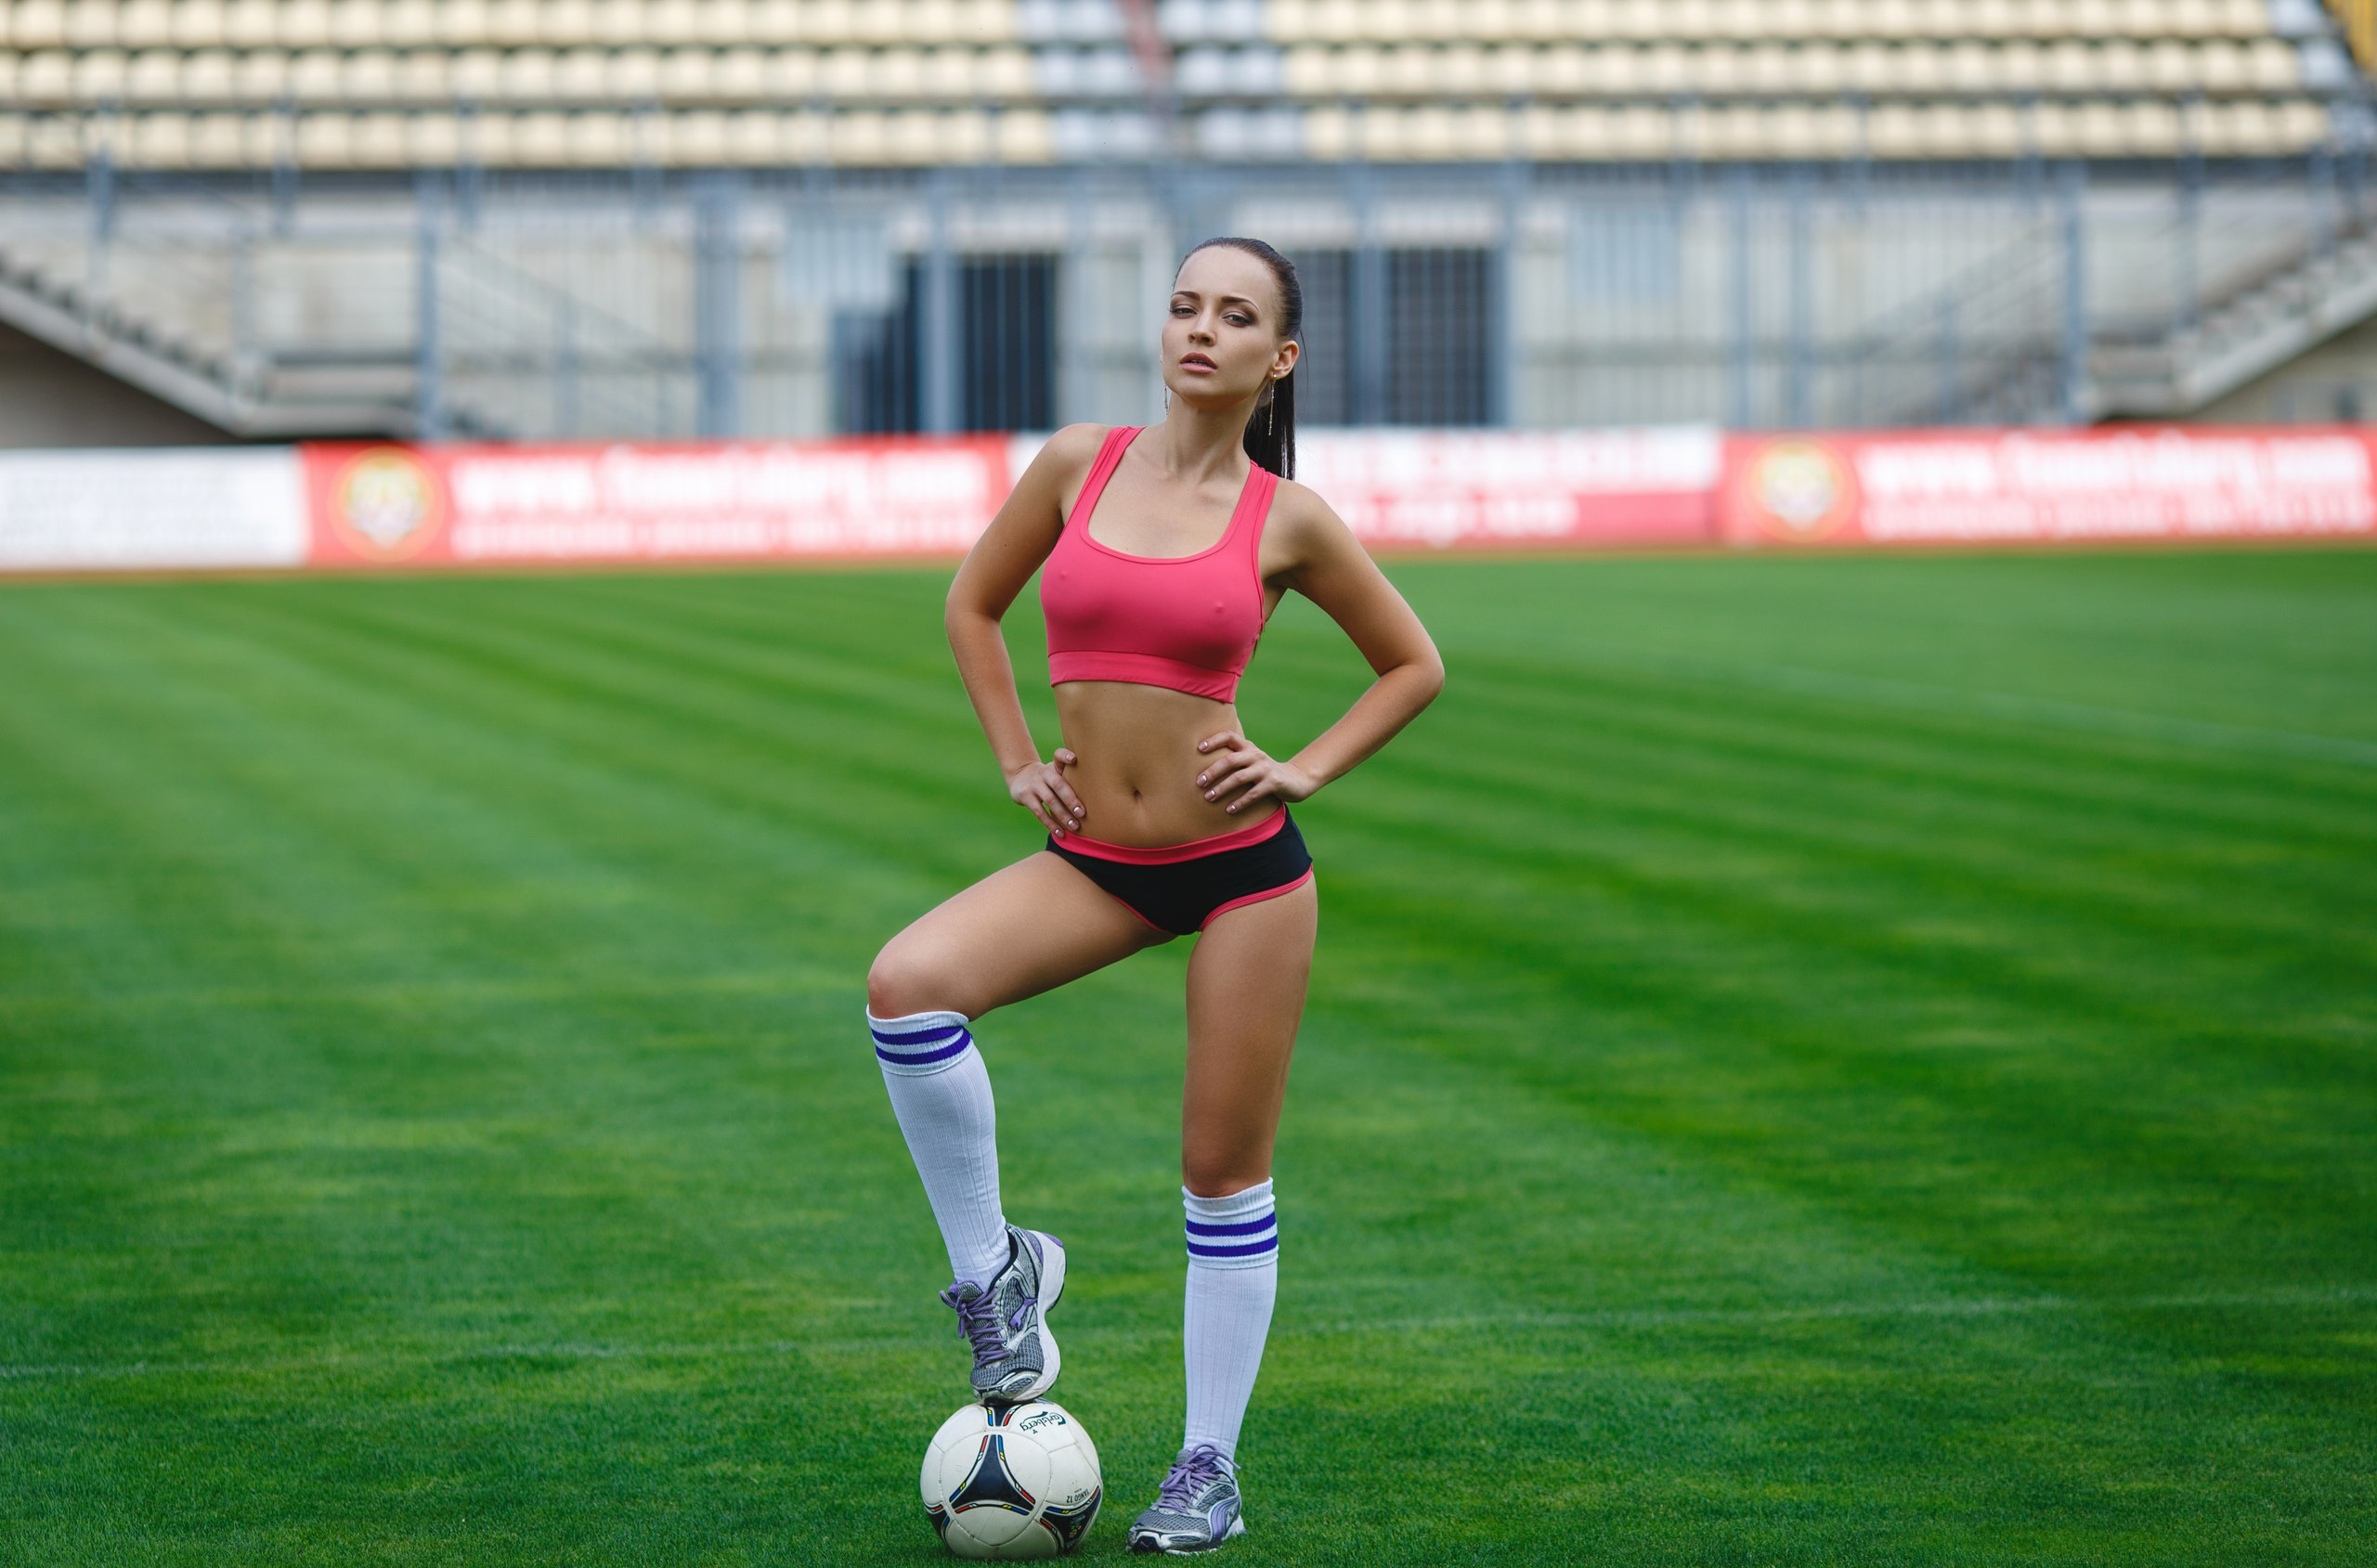 girls-playing-sports-top-sexy-porn-pics